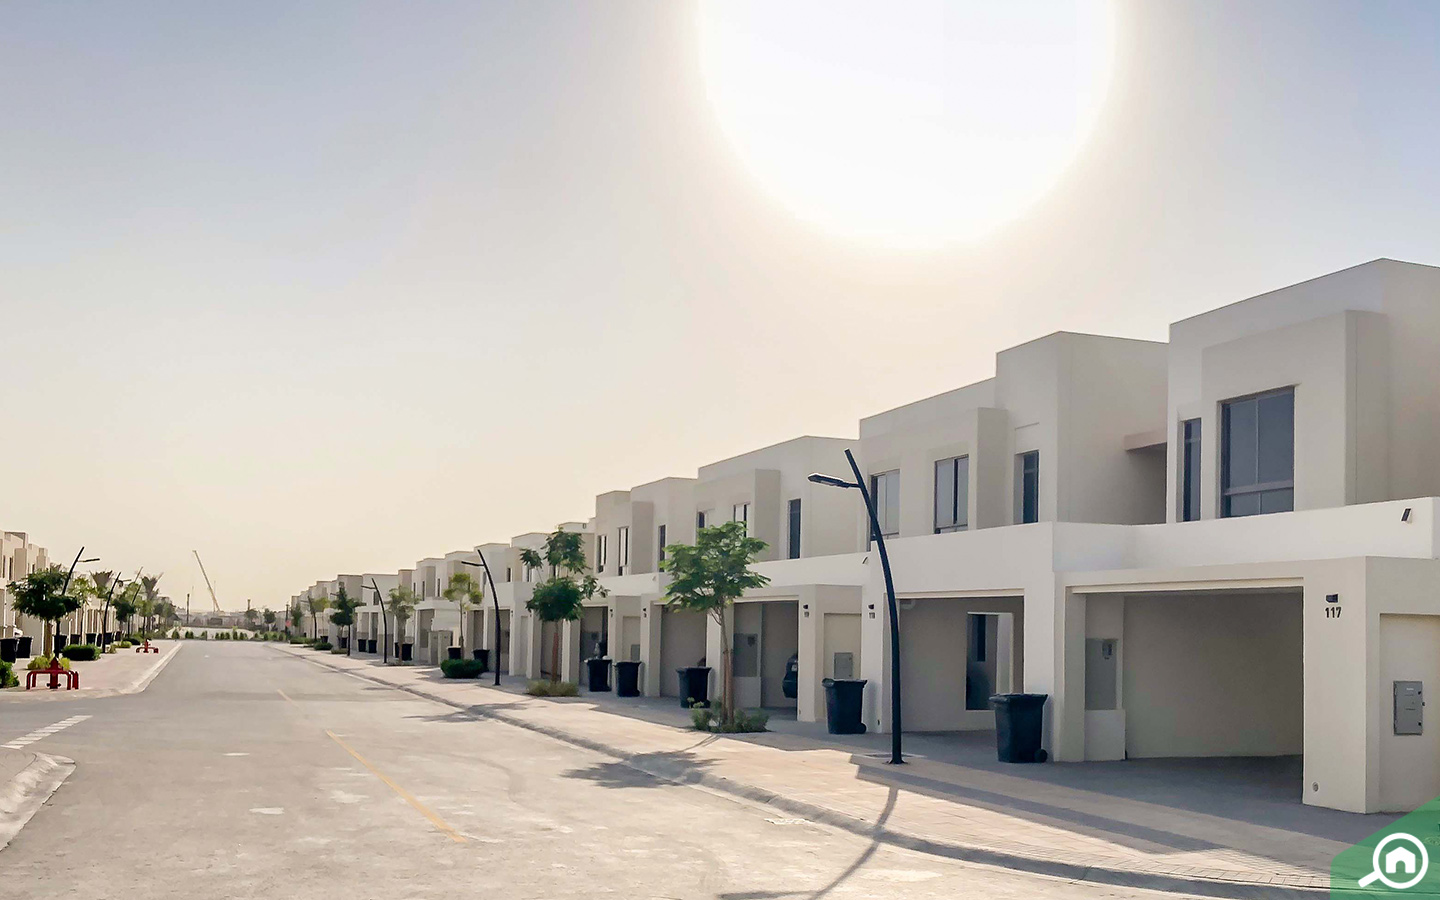 View of the townhouses for sale in Dubai